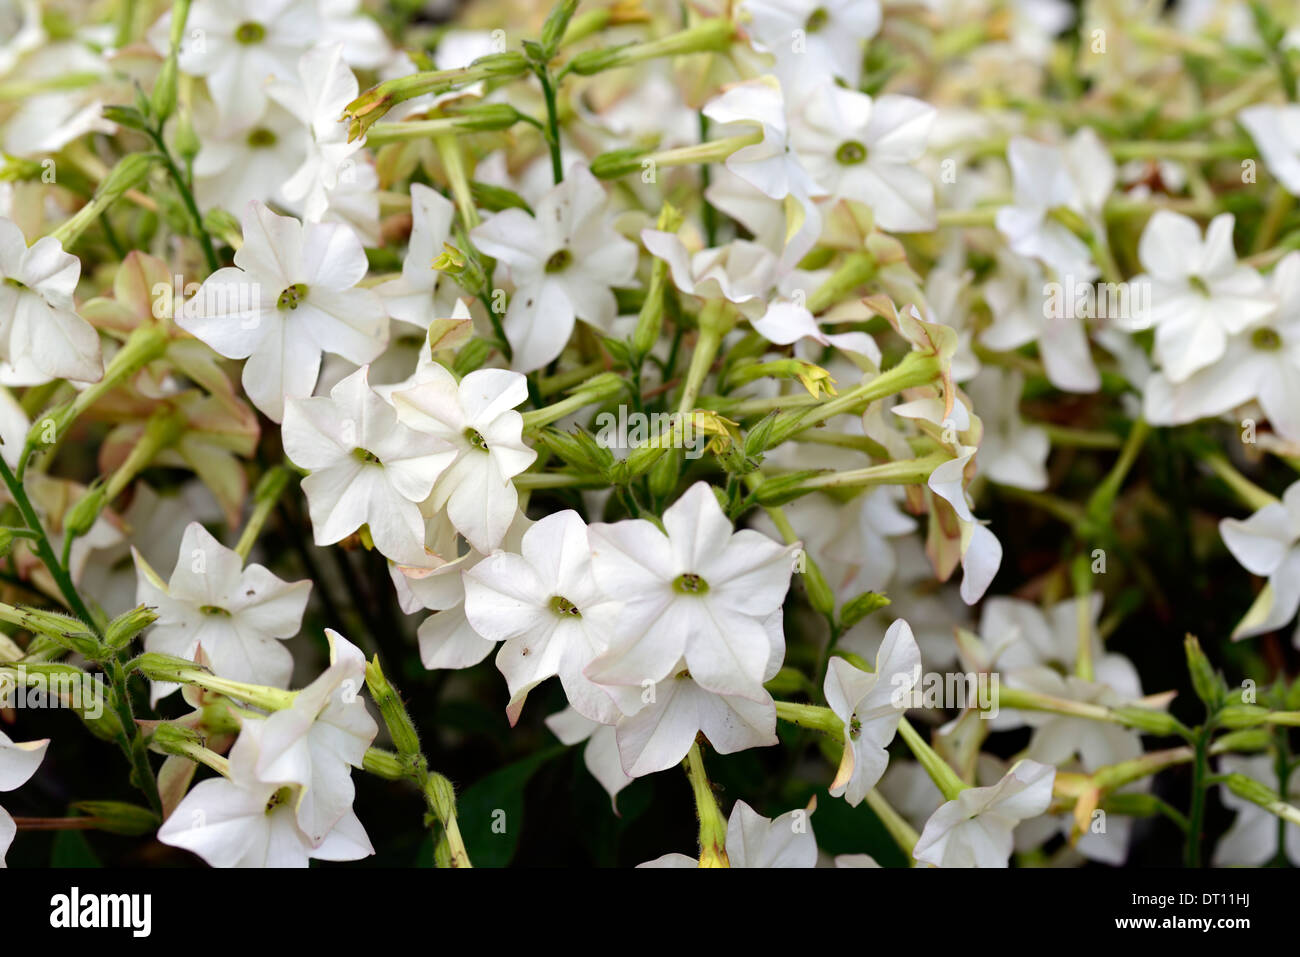 Nicotiana alata stock photos nicotiana alata stock images alamy nicotiana alata perfume white annual annuals flower flowers scented fragrant plant portraits flowering bedding bed izmirmasajfo Gallery